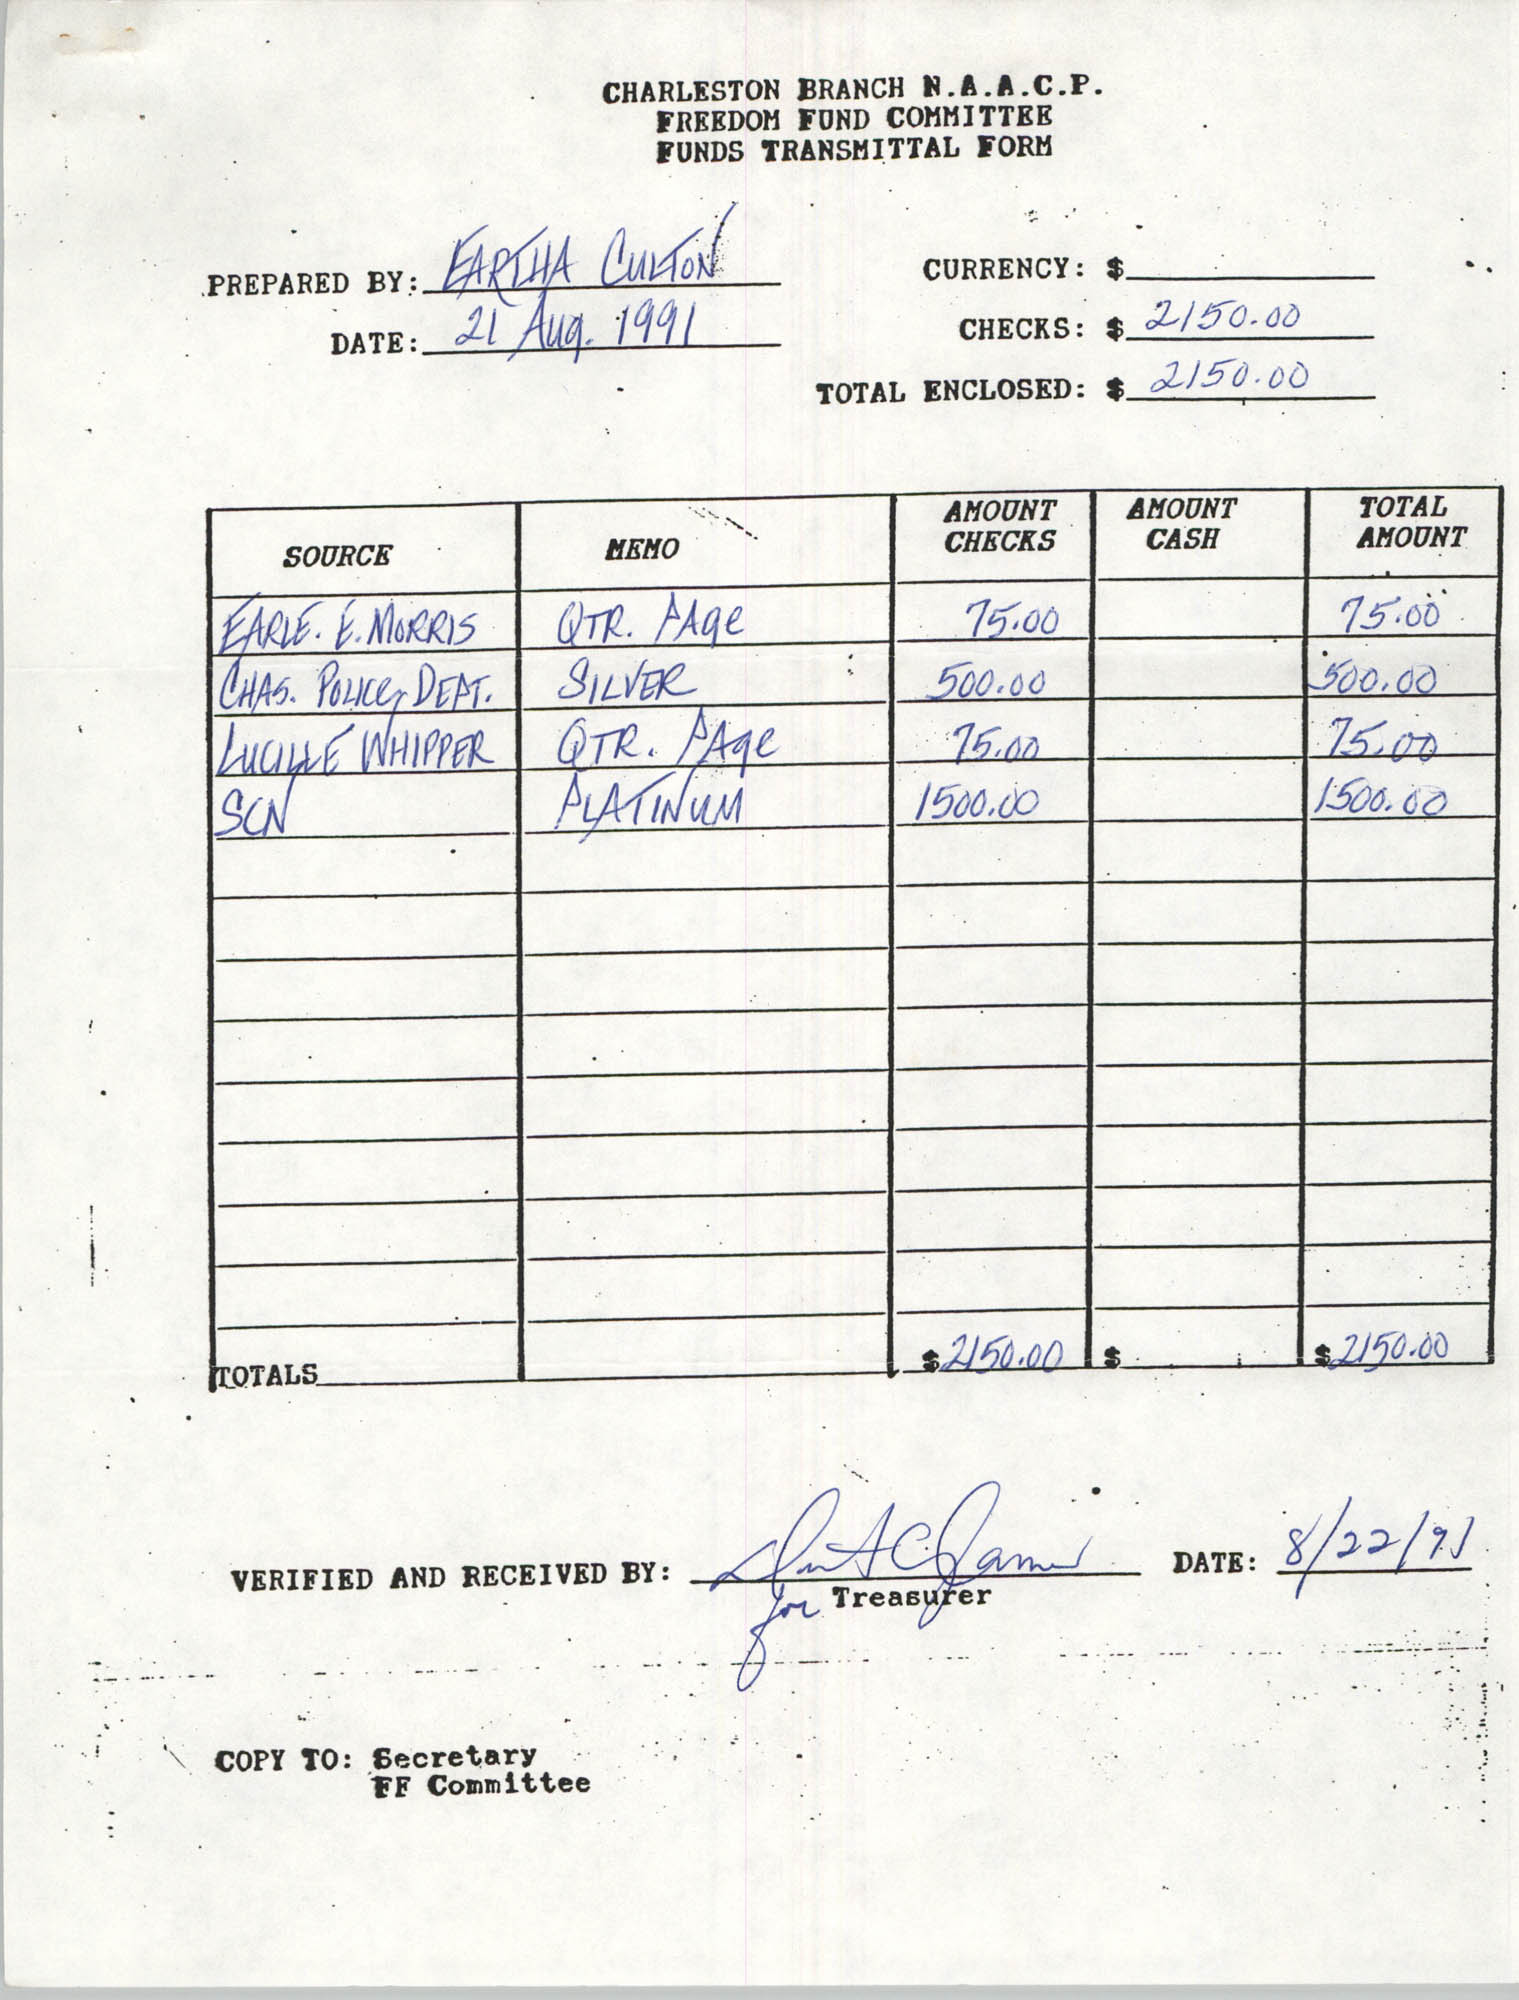 Charleston Branch of the NAACP Funds Transmittal Forms, August 1991, Page 22